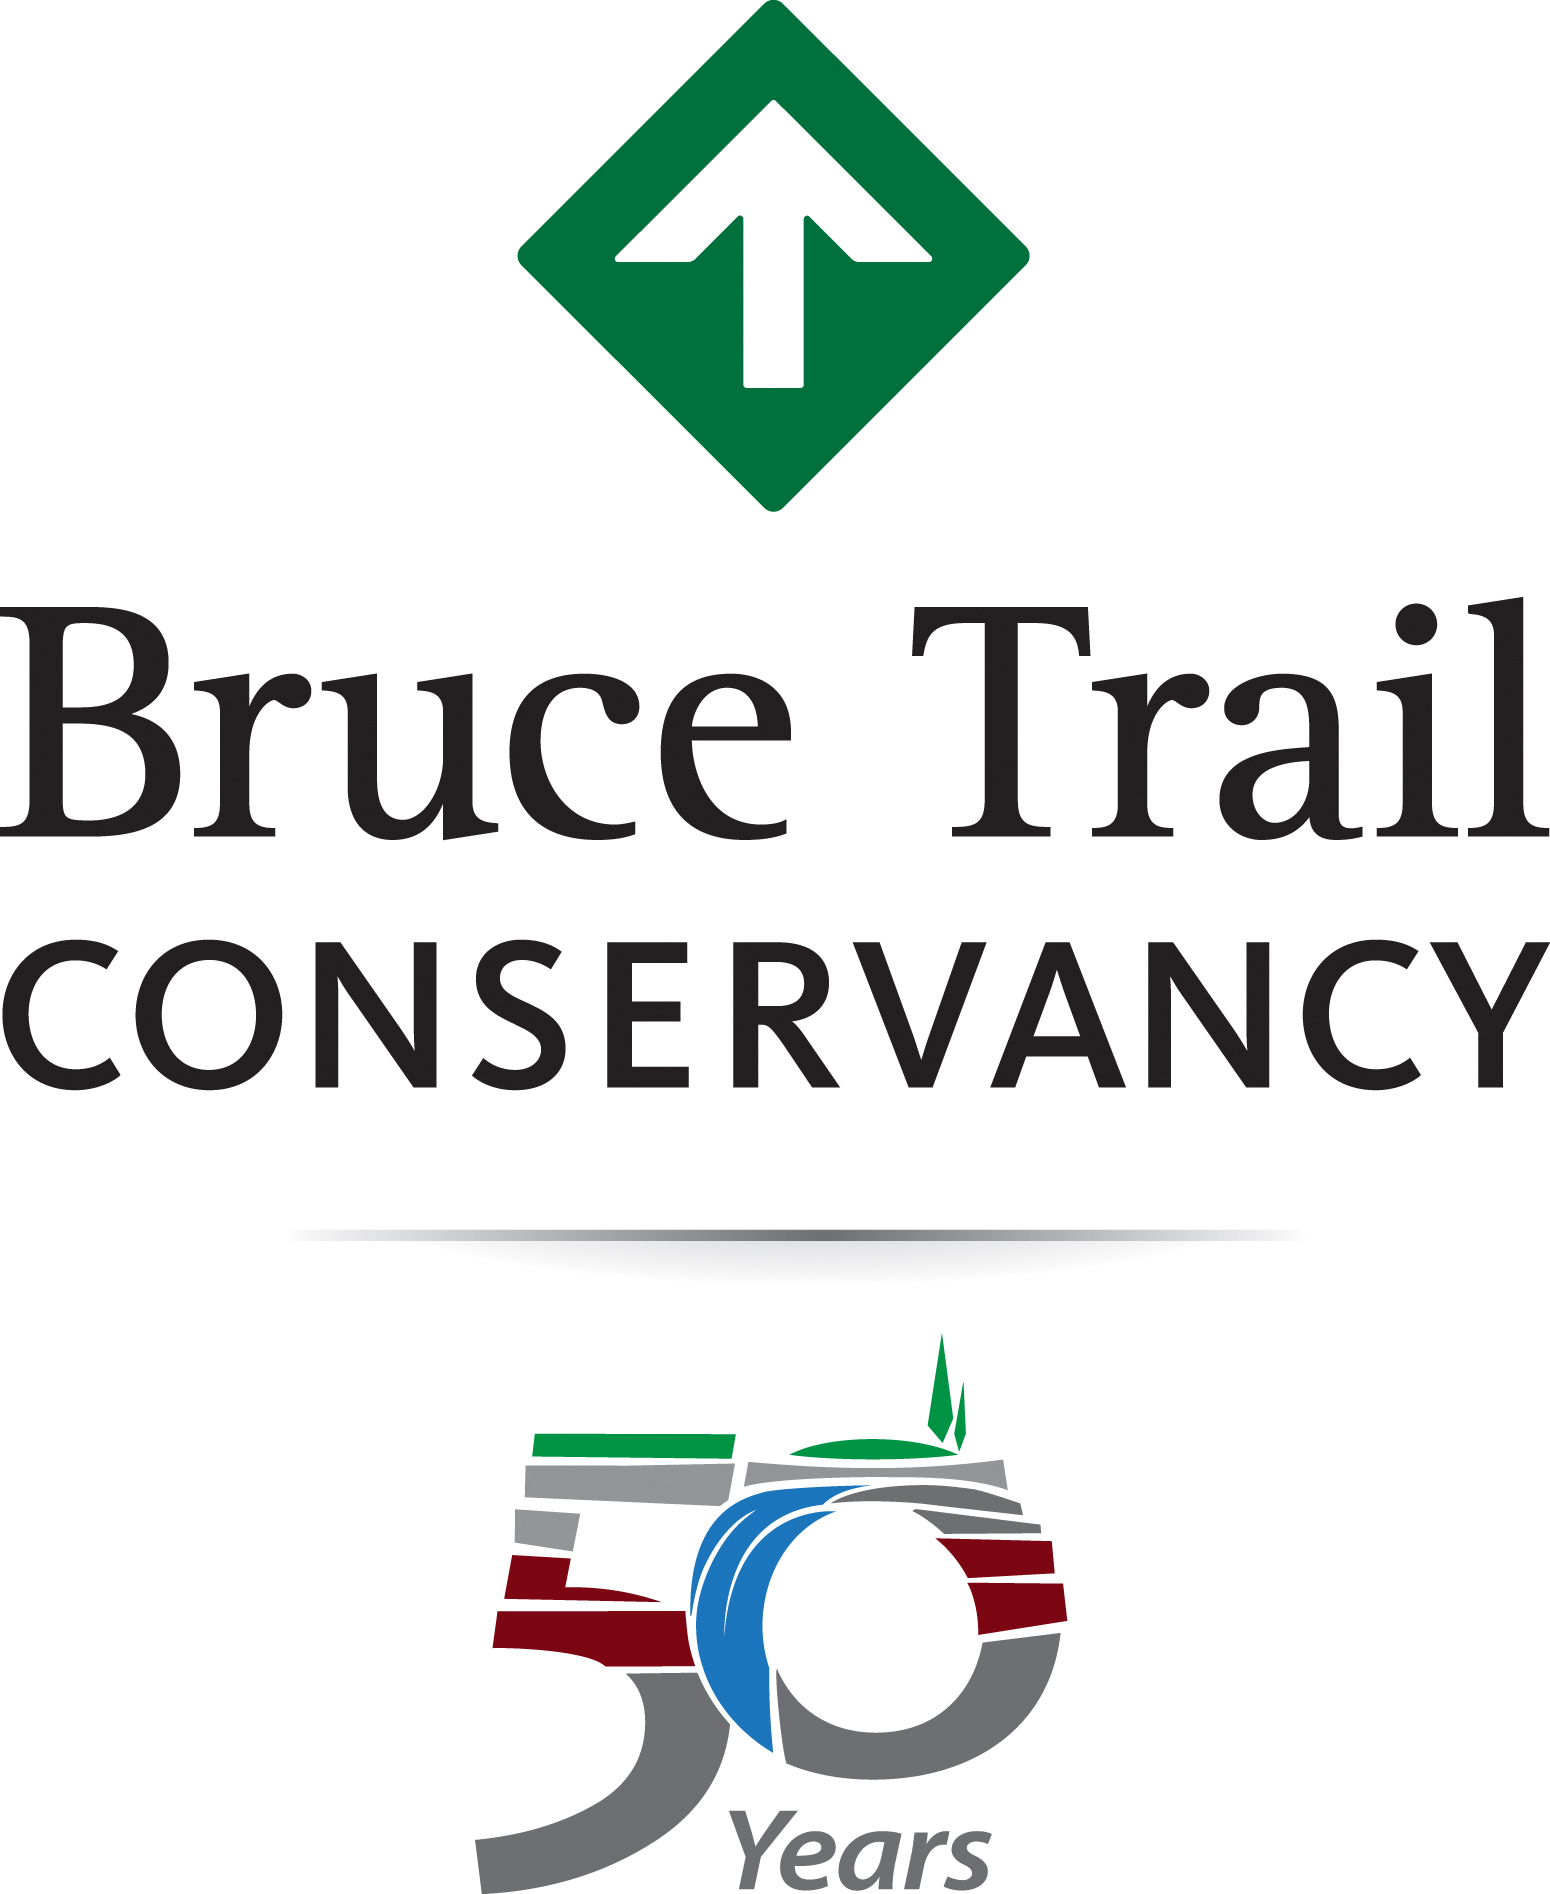 The Bruce Trail Conservancy